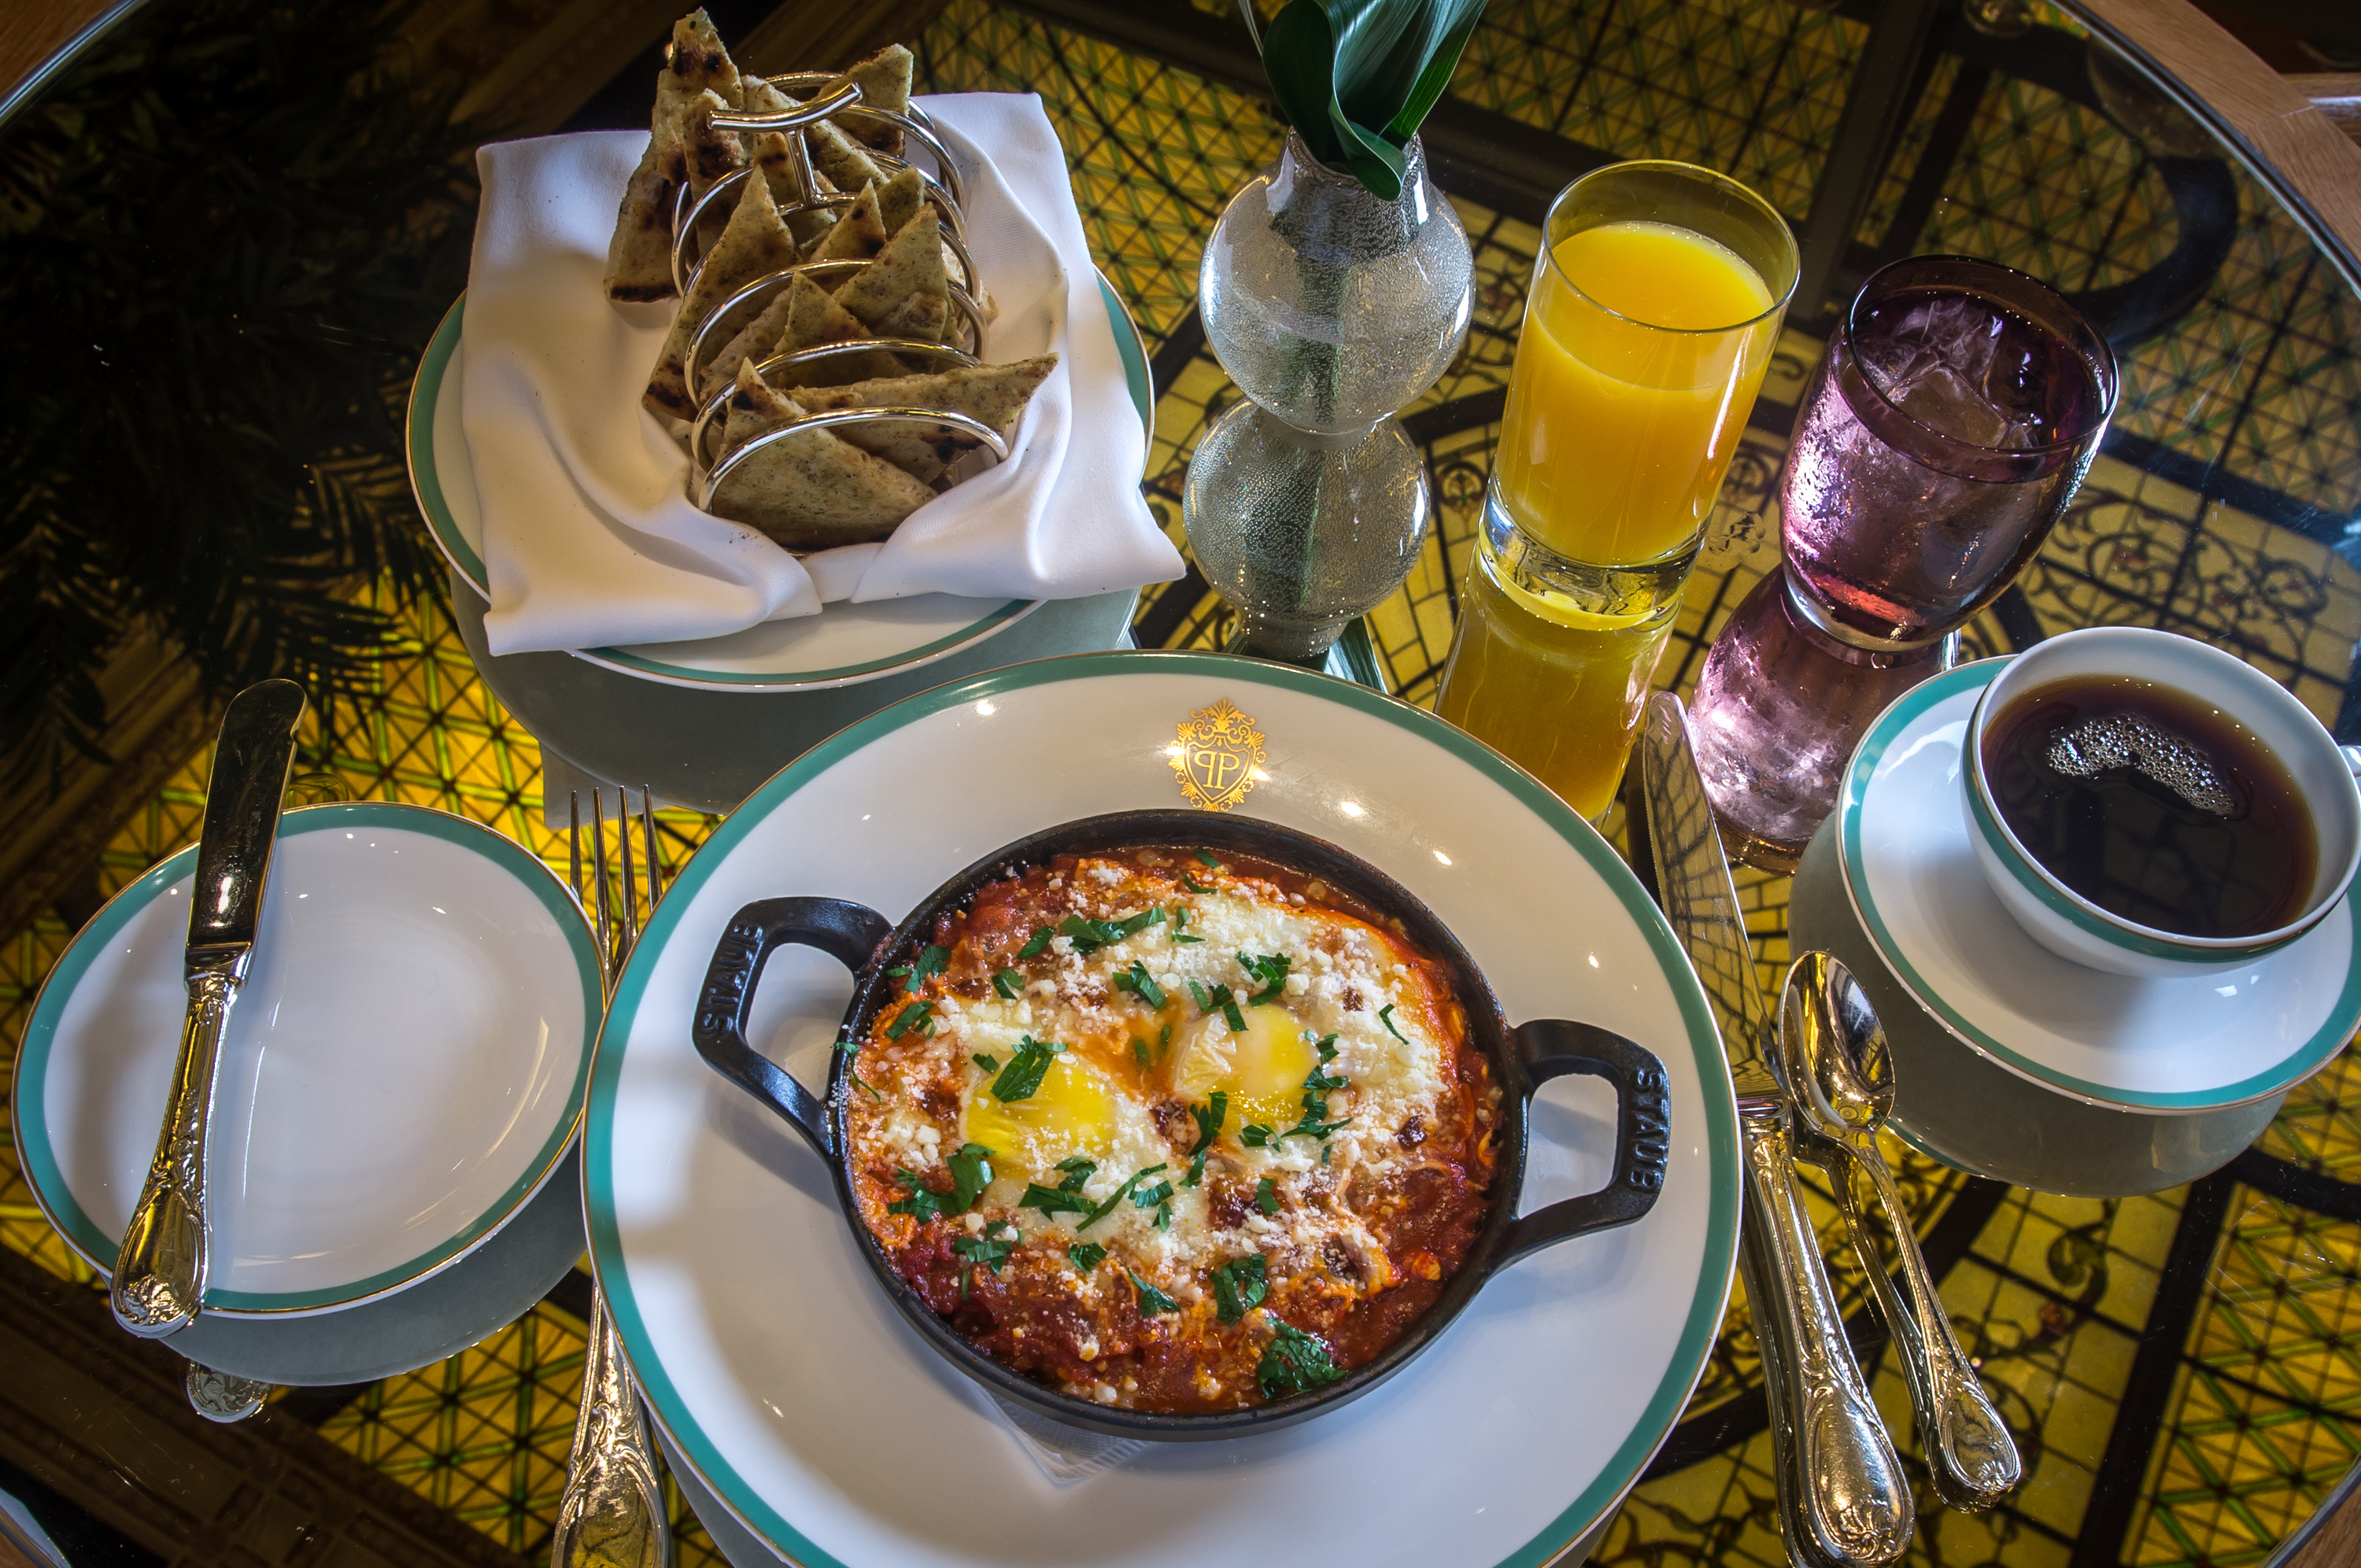 Where to get Easter brunch in NYC